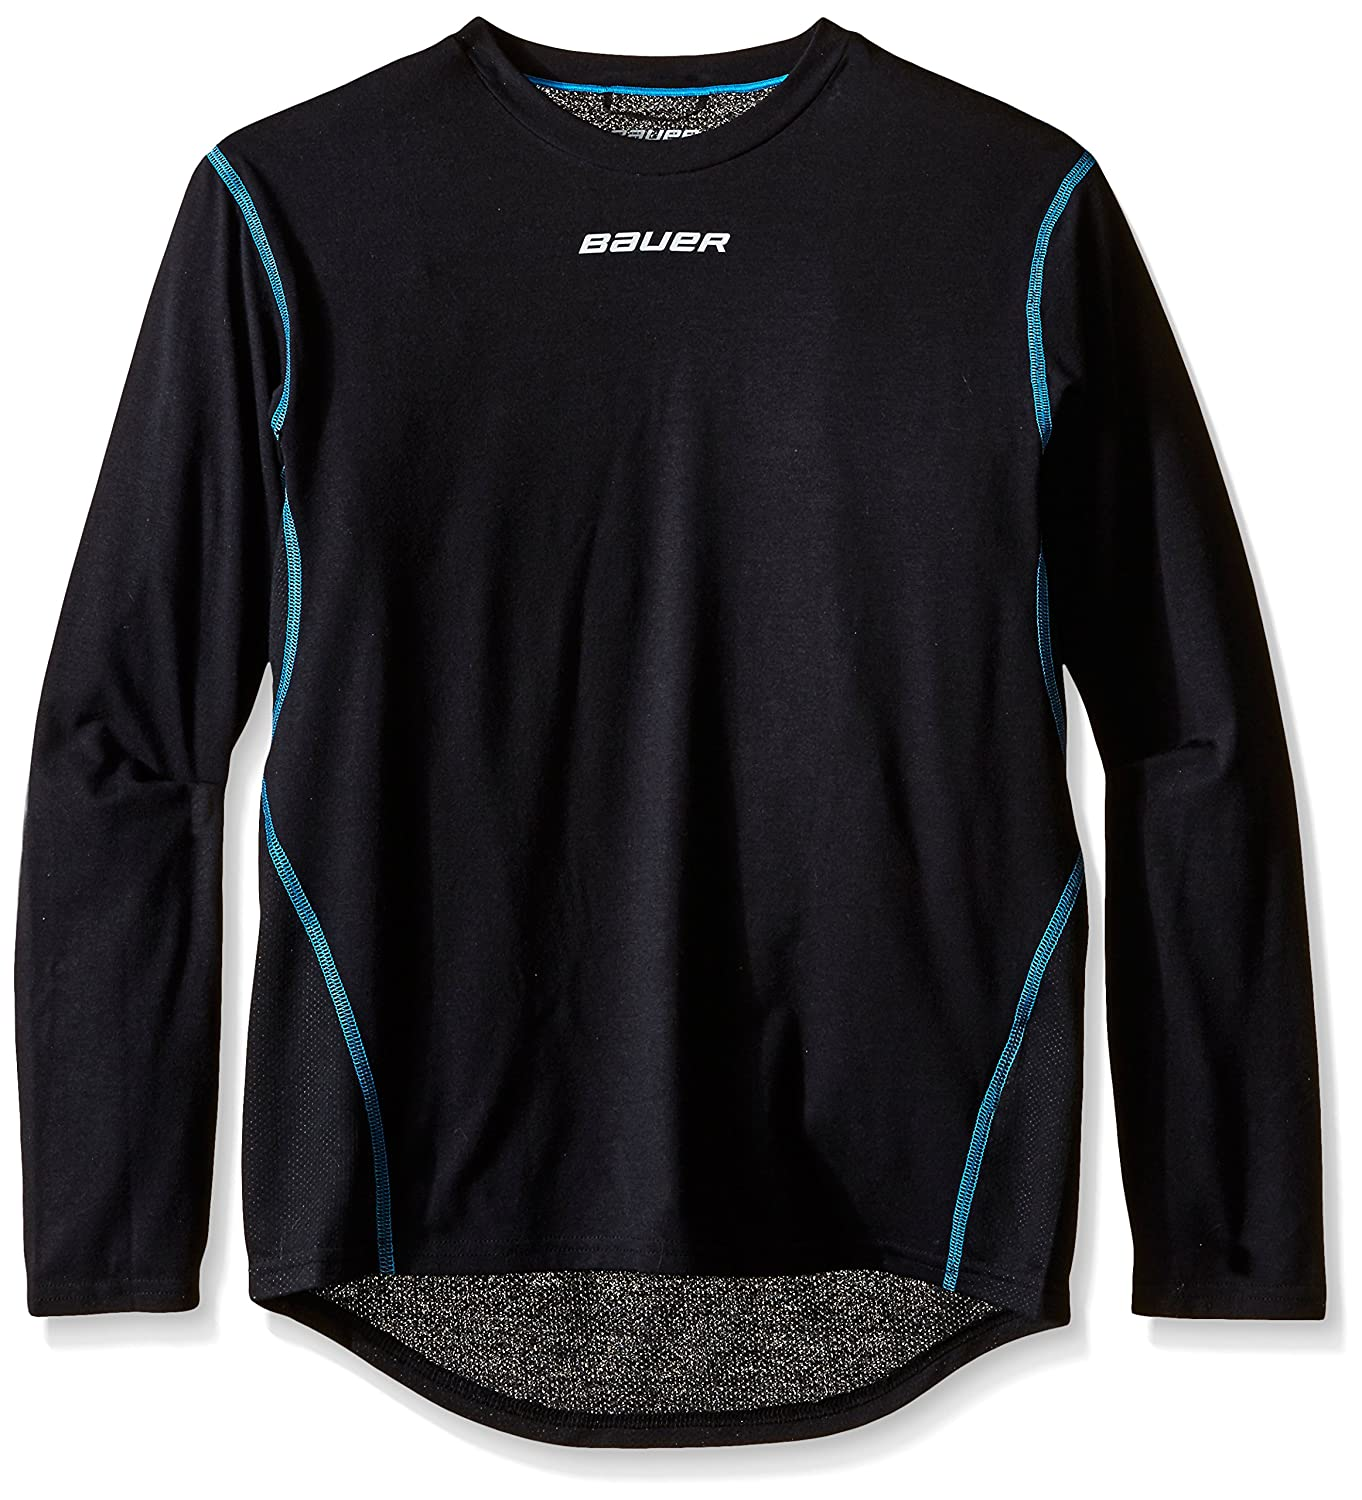 Bauer Boys Youth NG Core Long Sleeve Crew Base Layer Top BAY2F 1042835-P